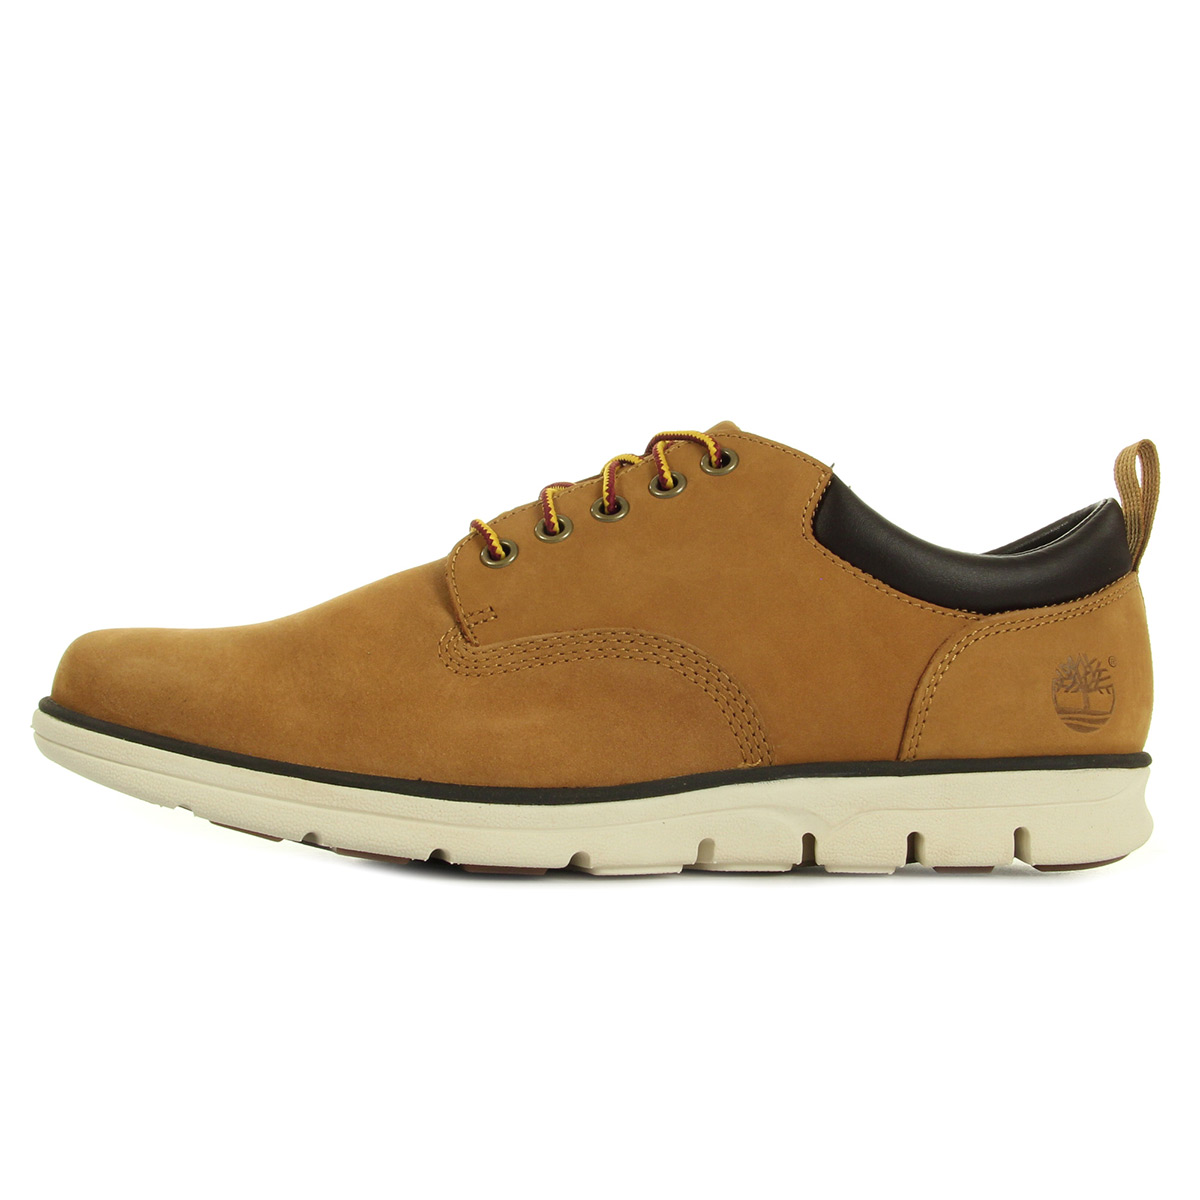 Timberland Bradstreet 5 eye Oxford CA1I73, Baskets mode homme